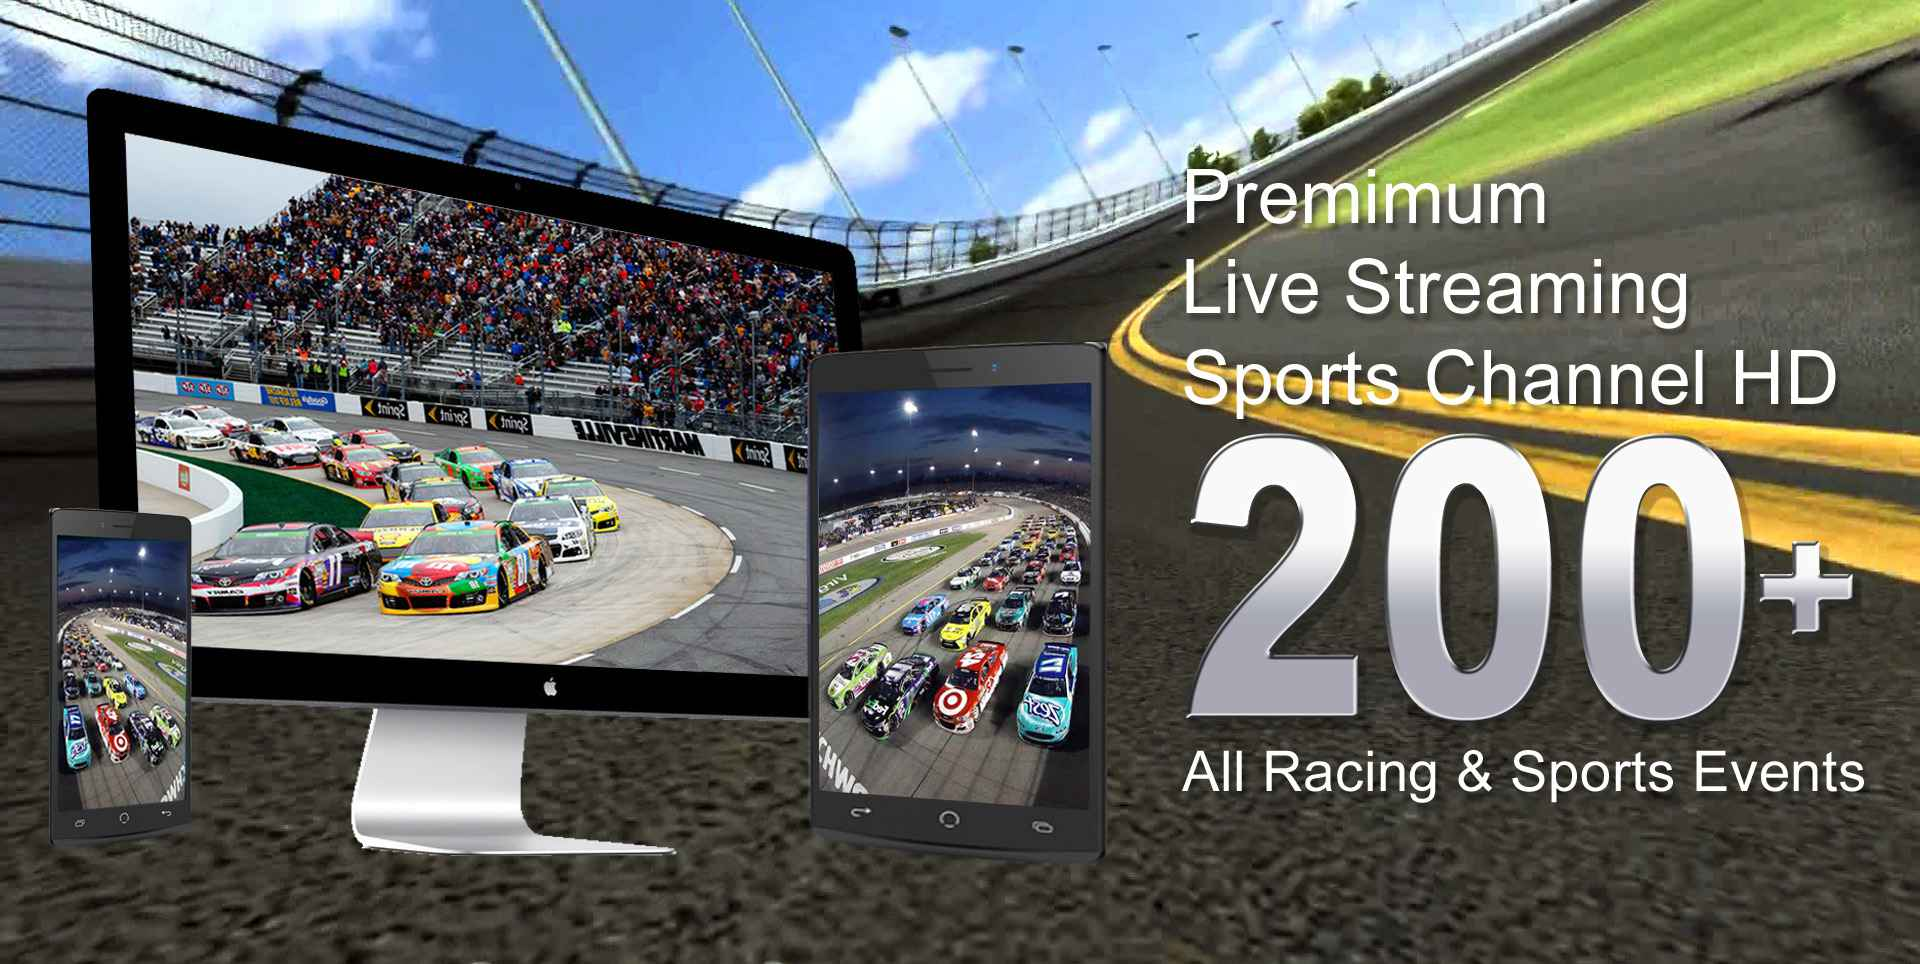 Nascar Xfinity Series US Cellular 250 Racing Online